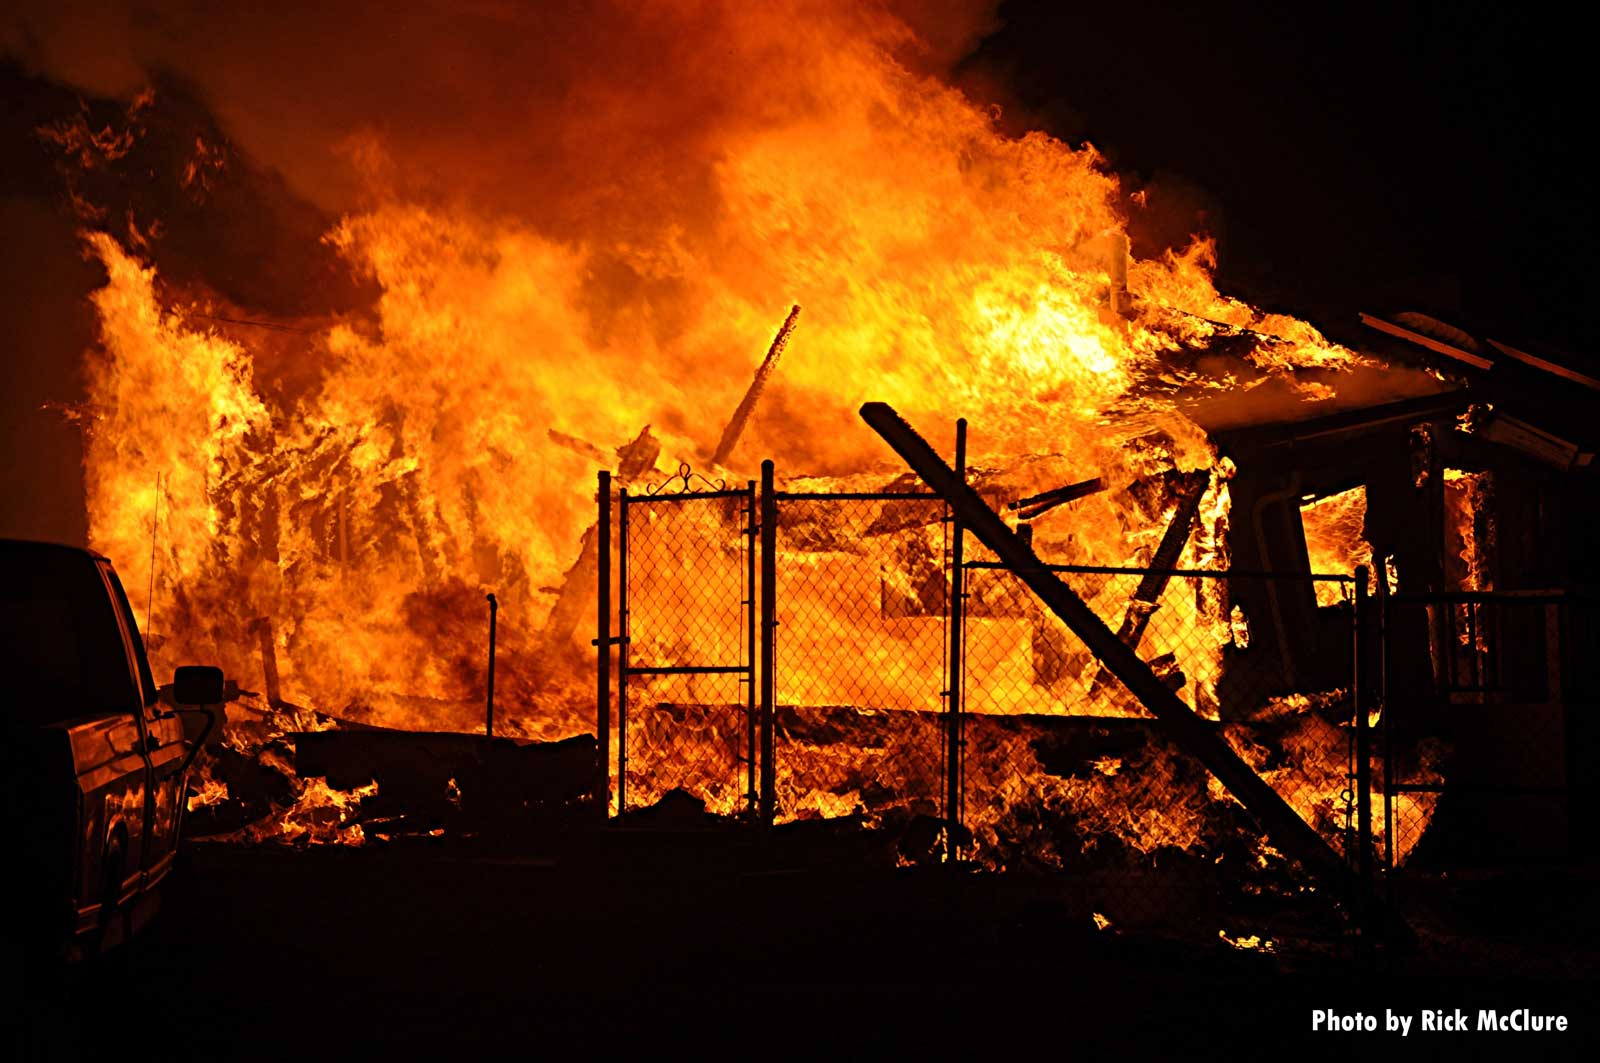 Remains of a building amid flames